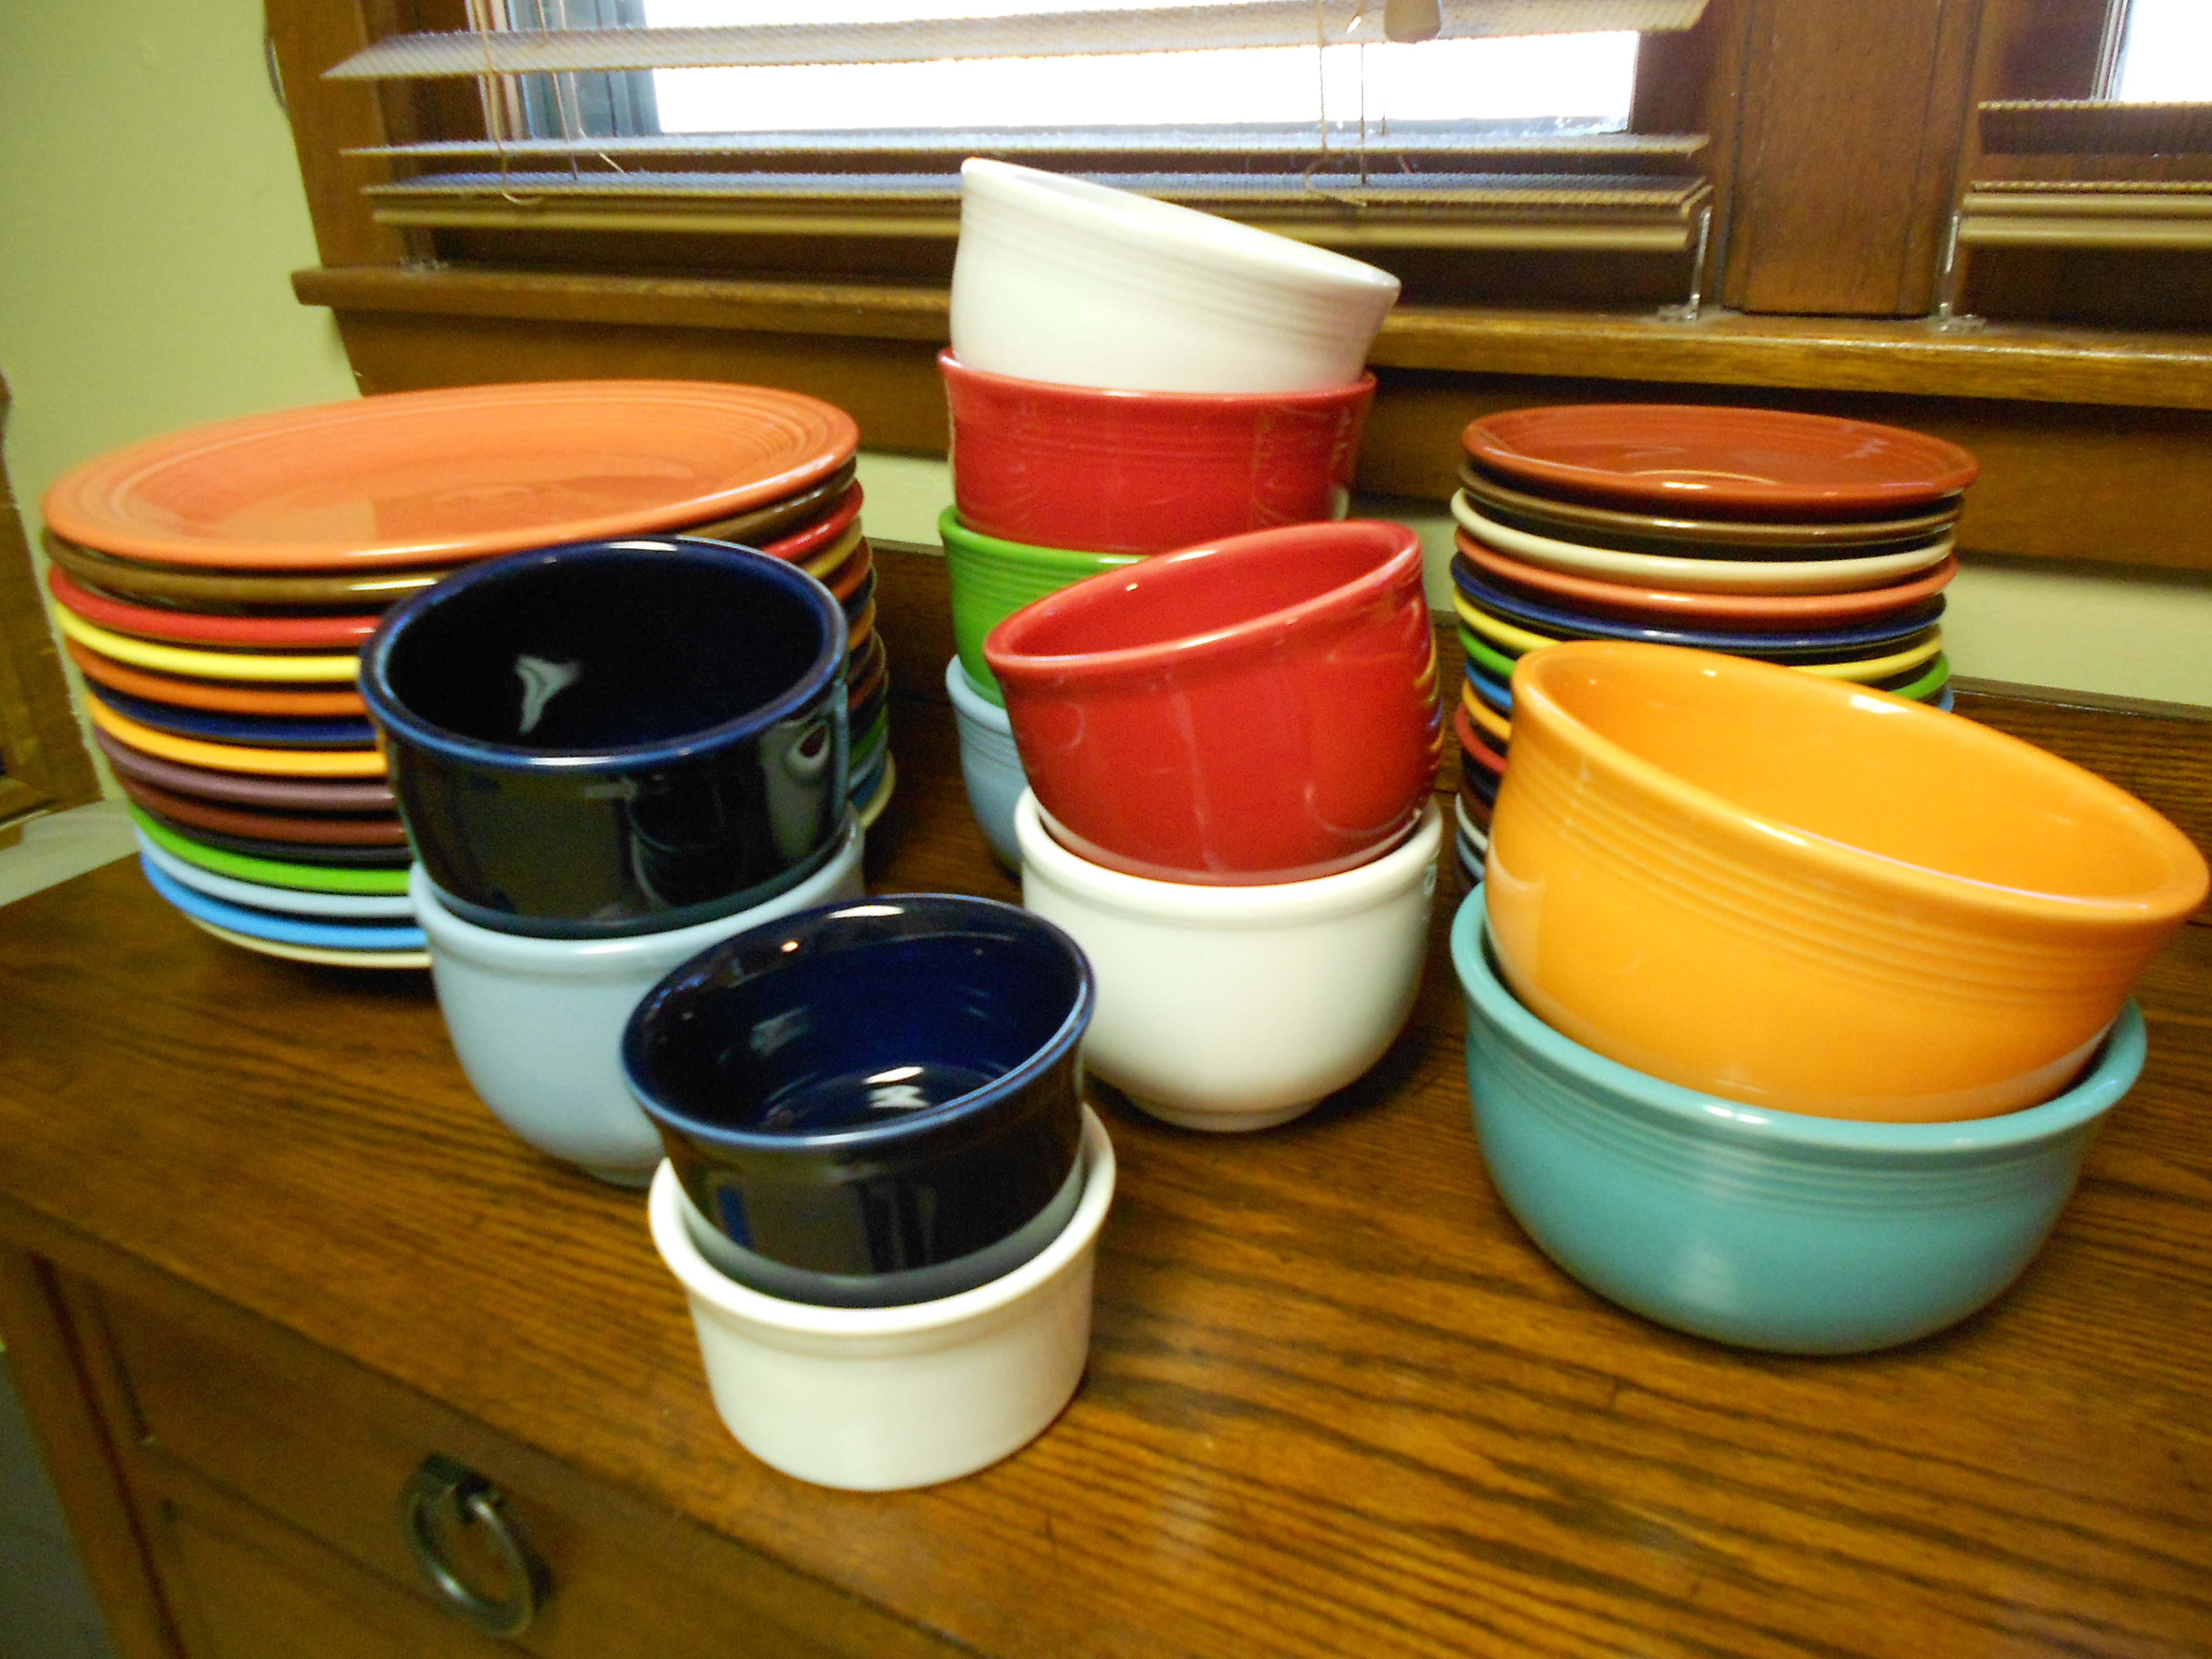 awesome cup mug and saucers plus plate by fiestaware for dinnerware ideas